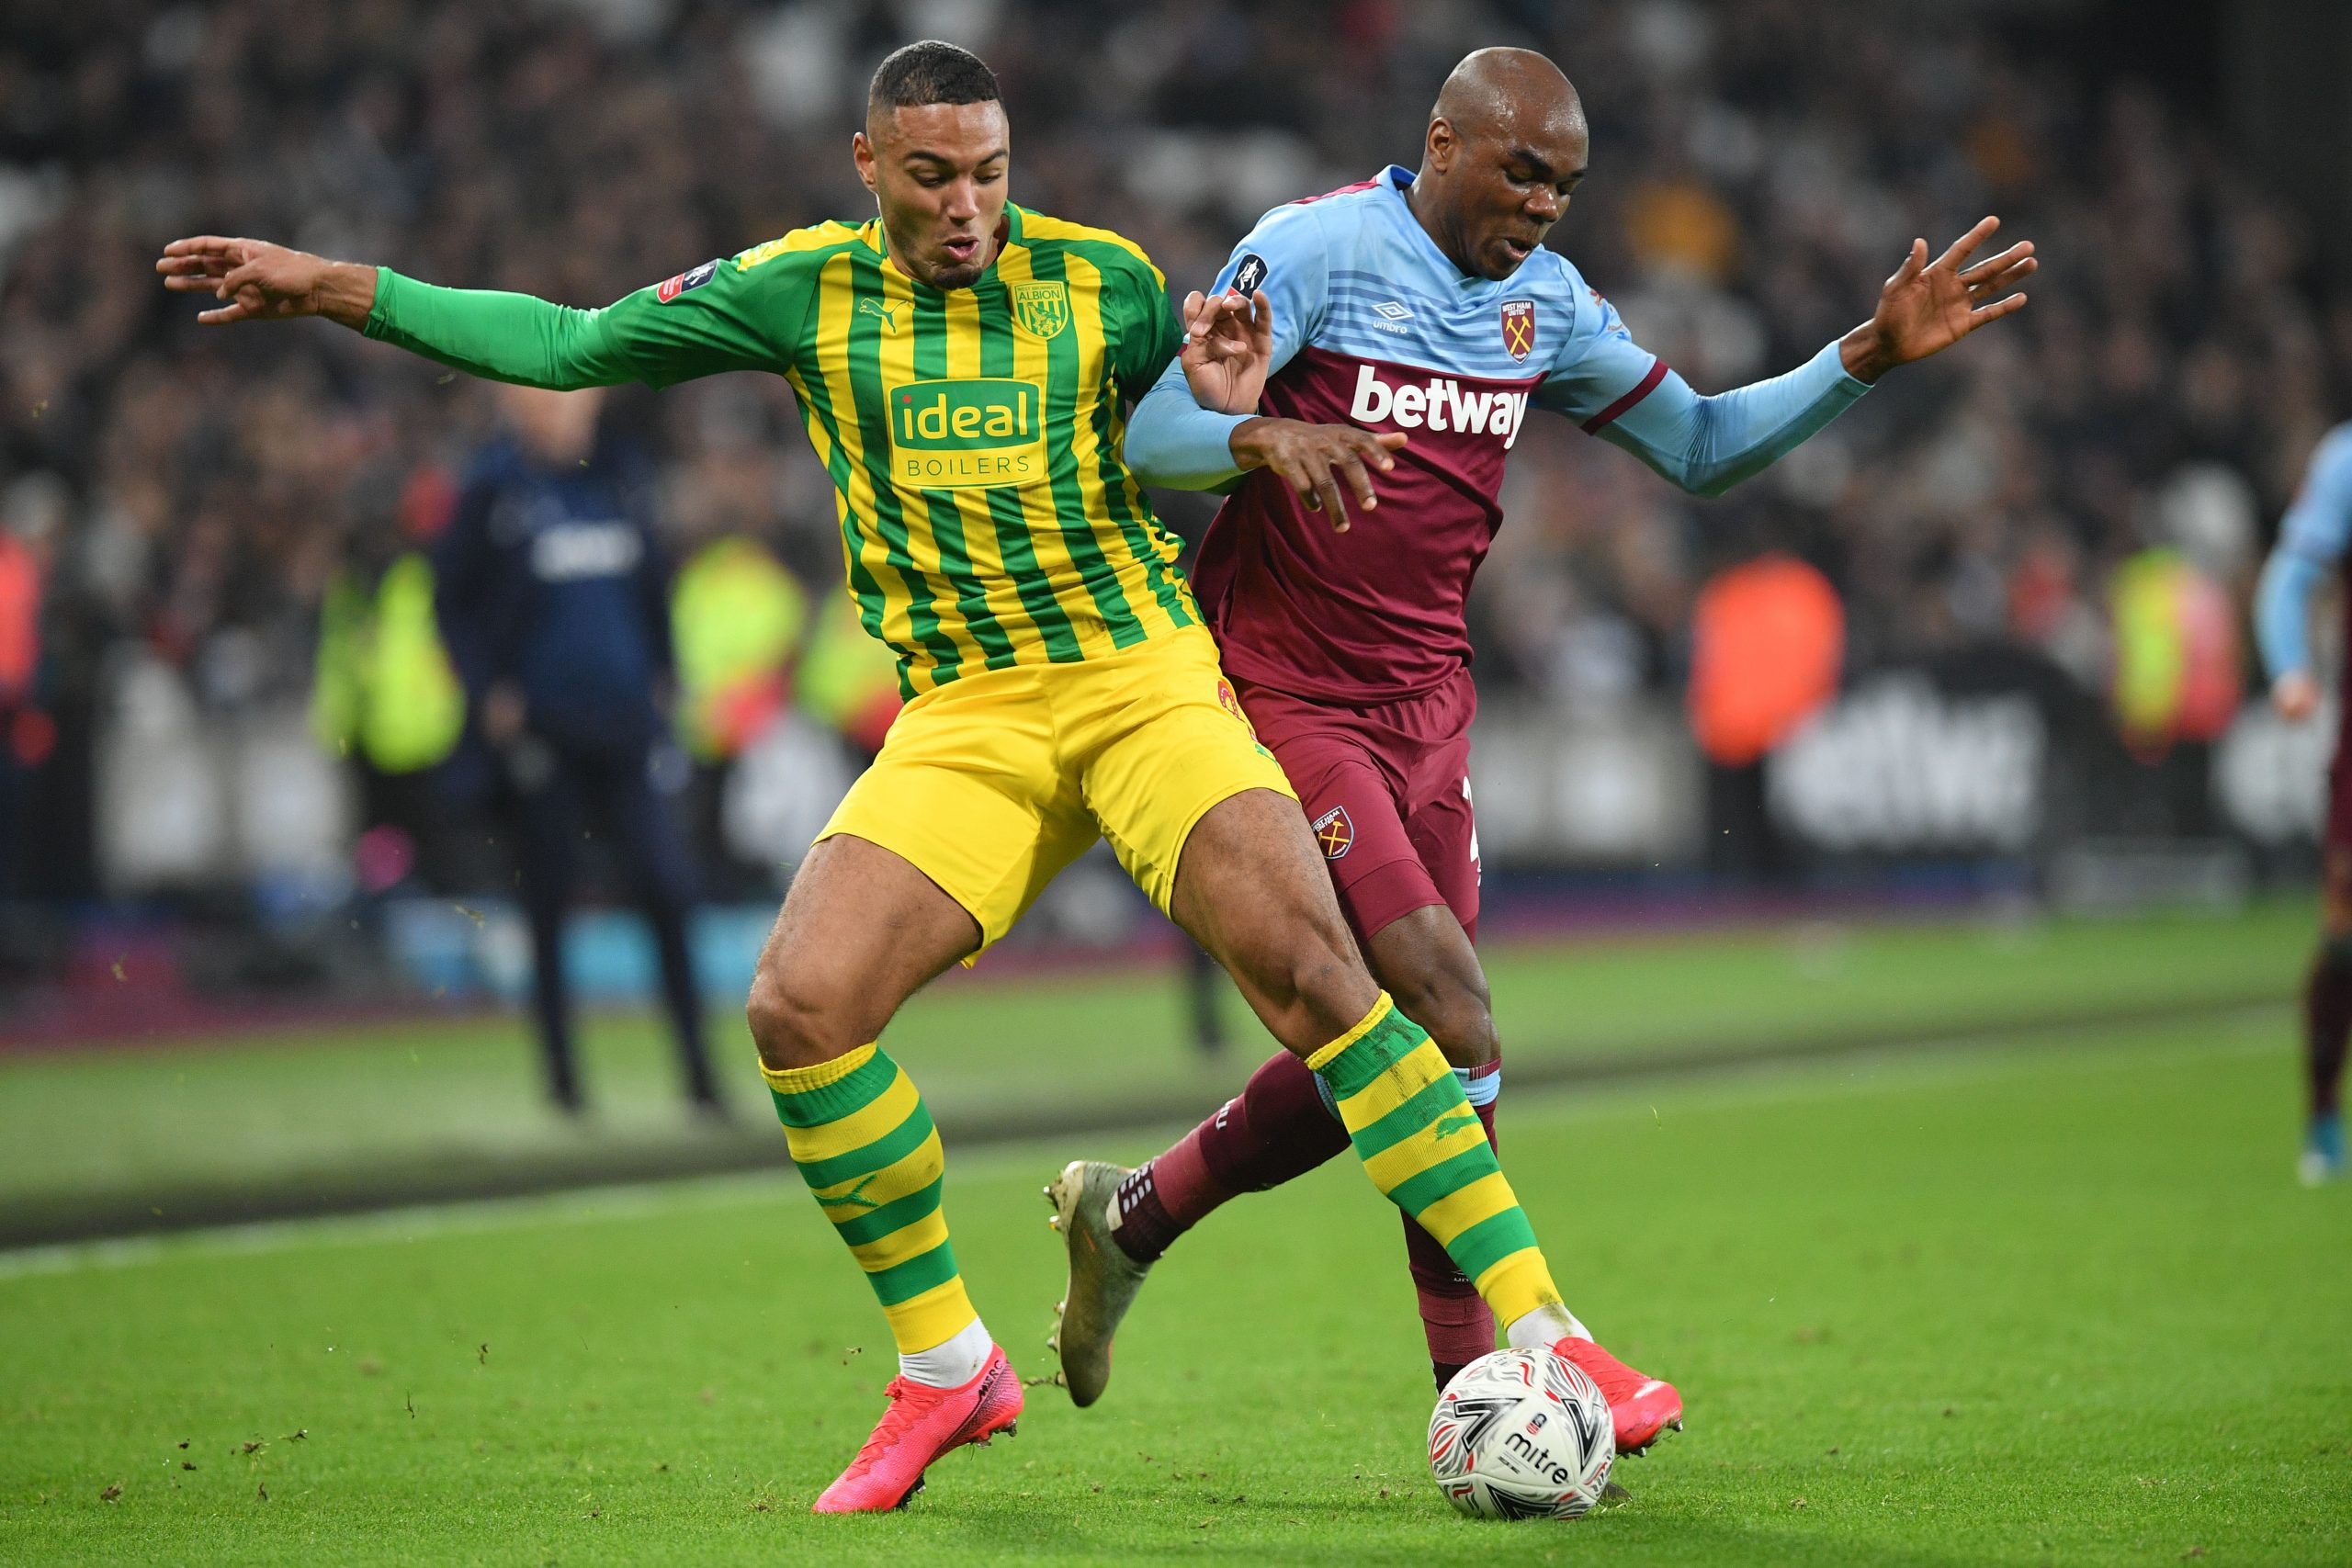 Forward Kenneth Zohore (left) has not been in the best of form since moving to West Brom last summer.